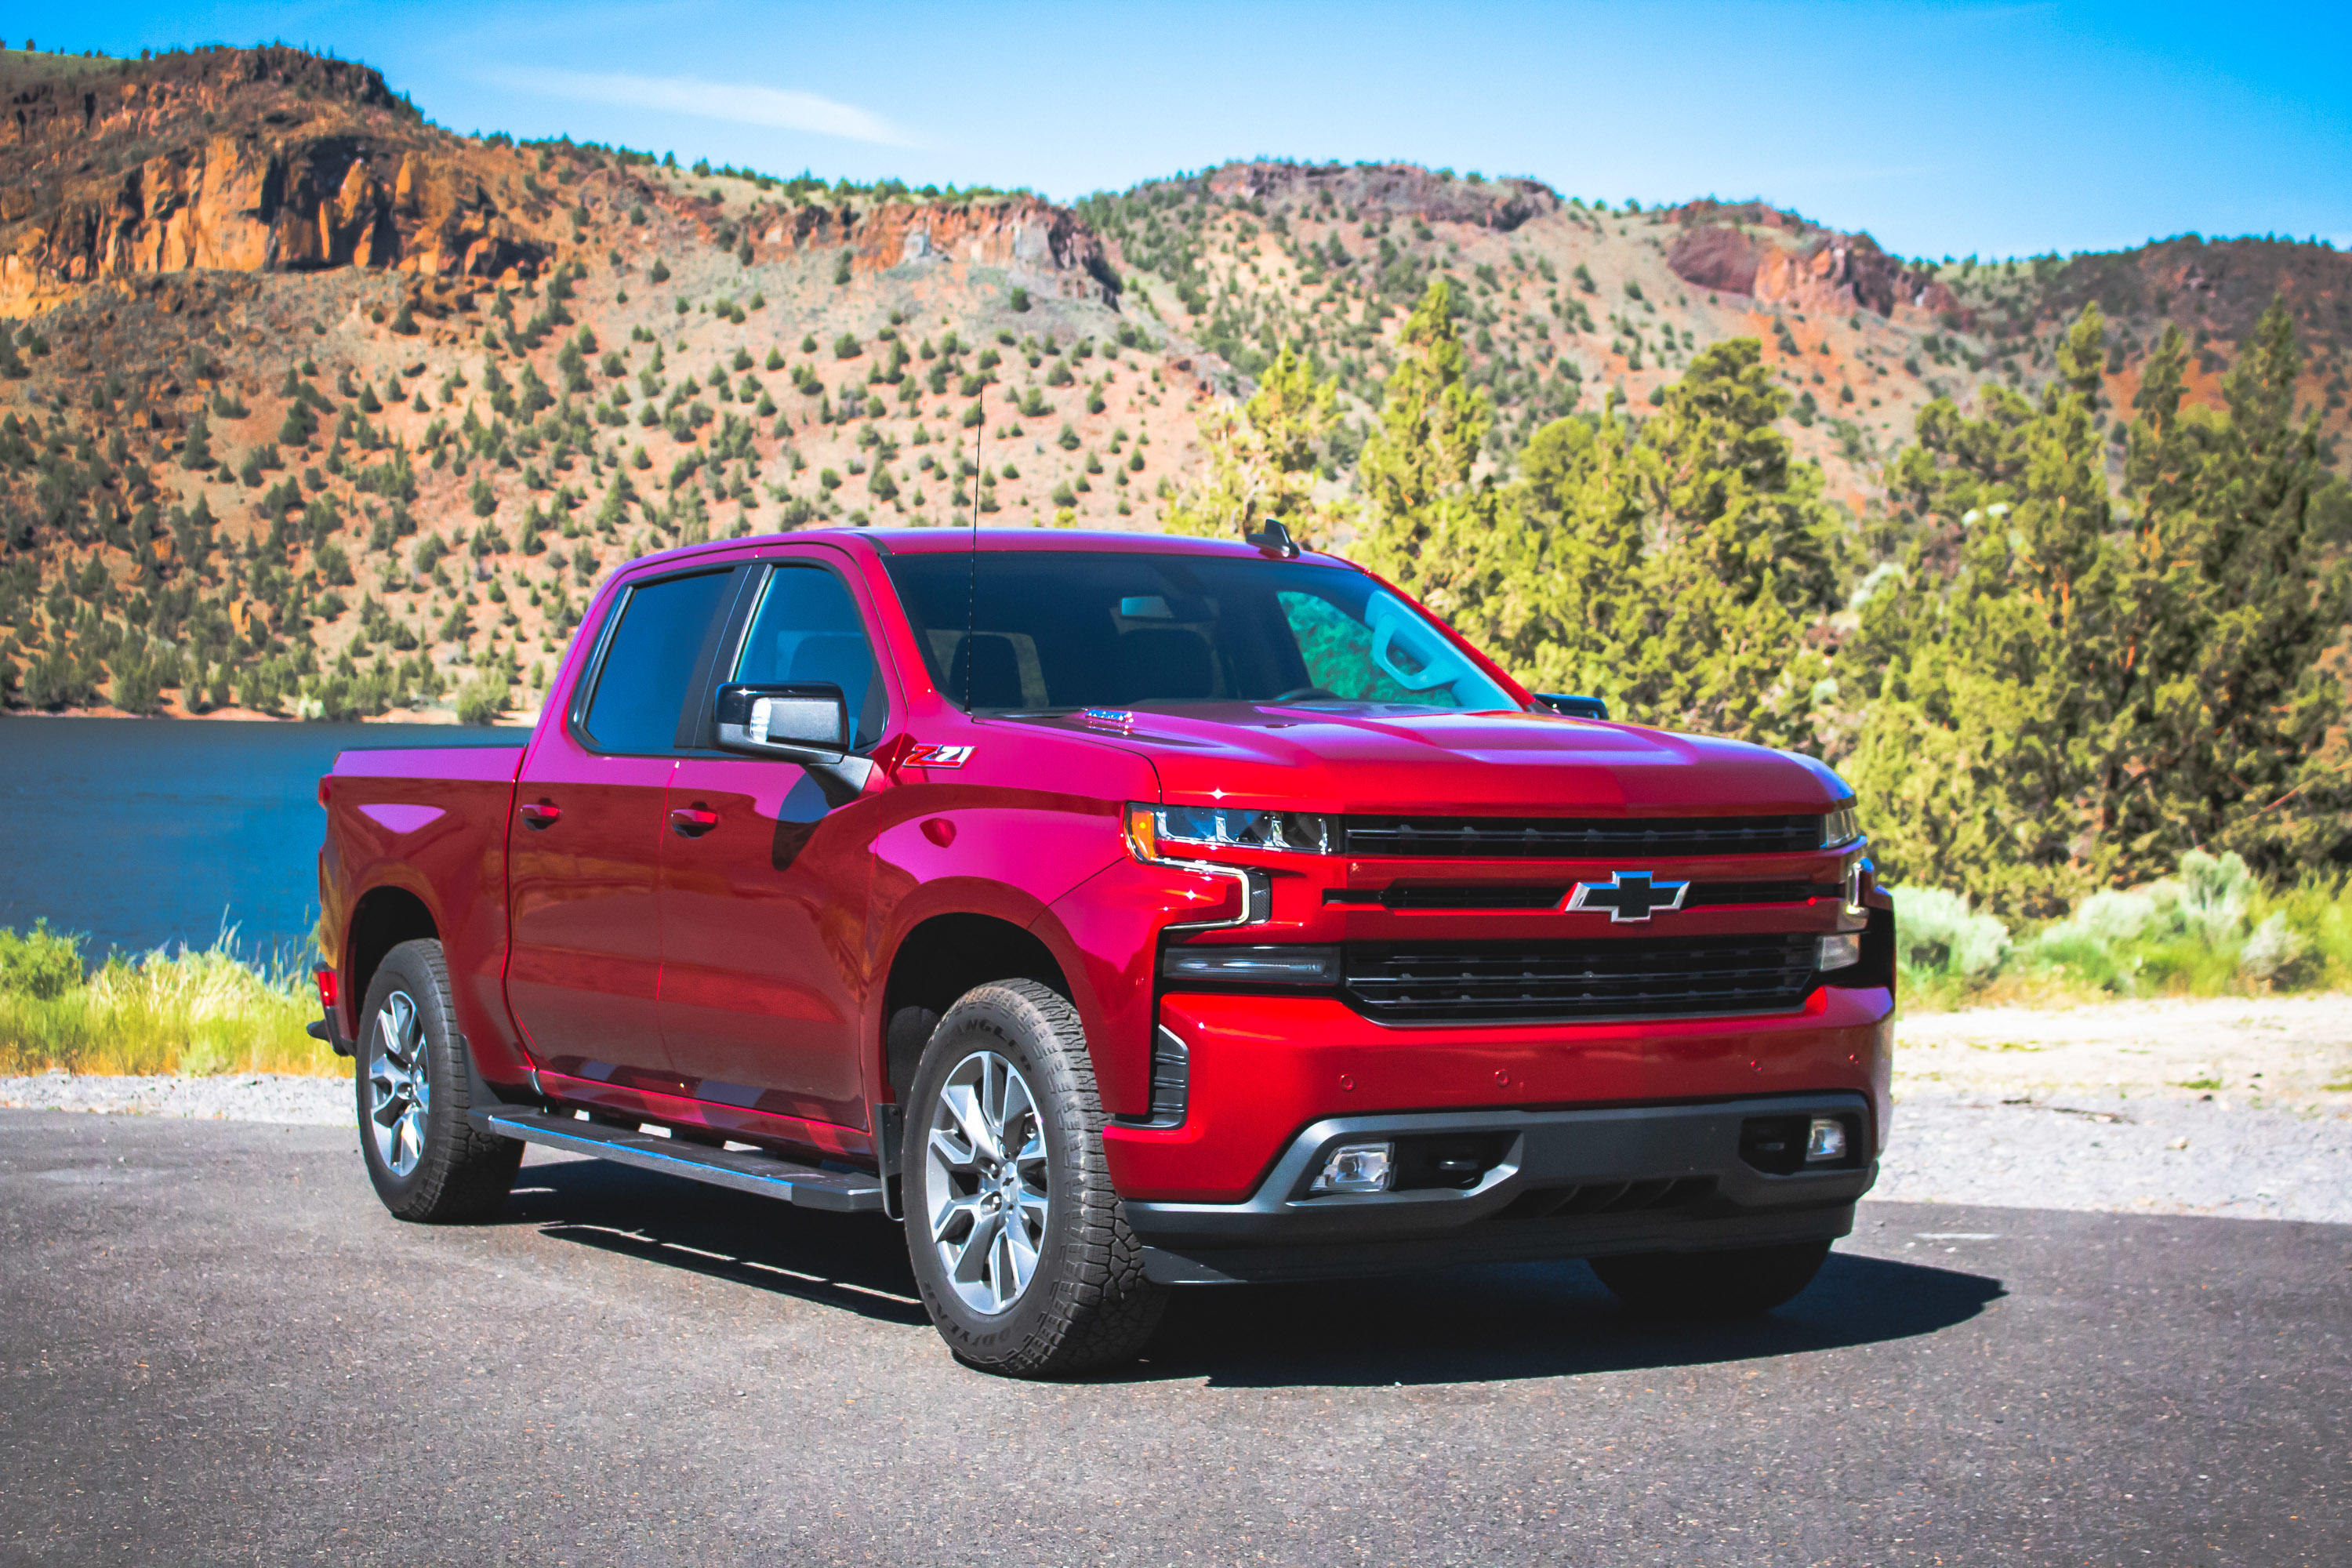 Chevy S 2020 Silverado 1500 Diesel Is The Most Efficient Pickup In The Us Roadshow